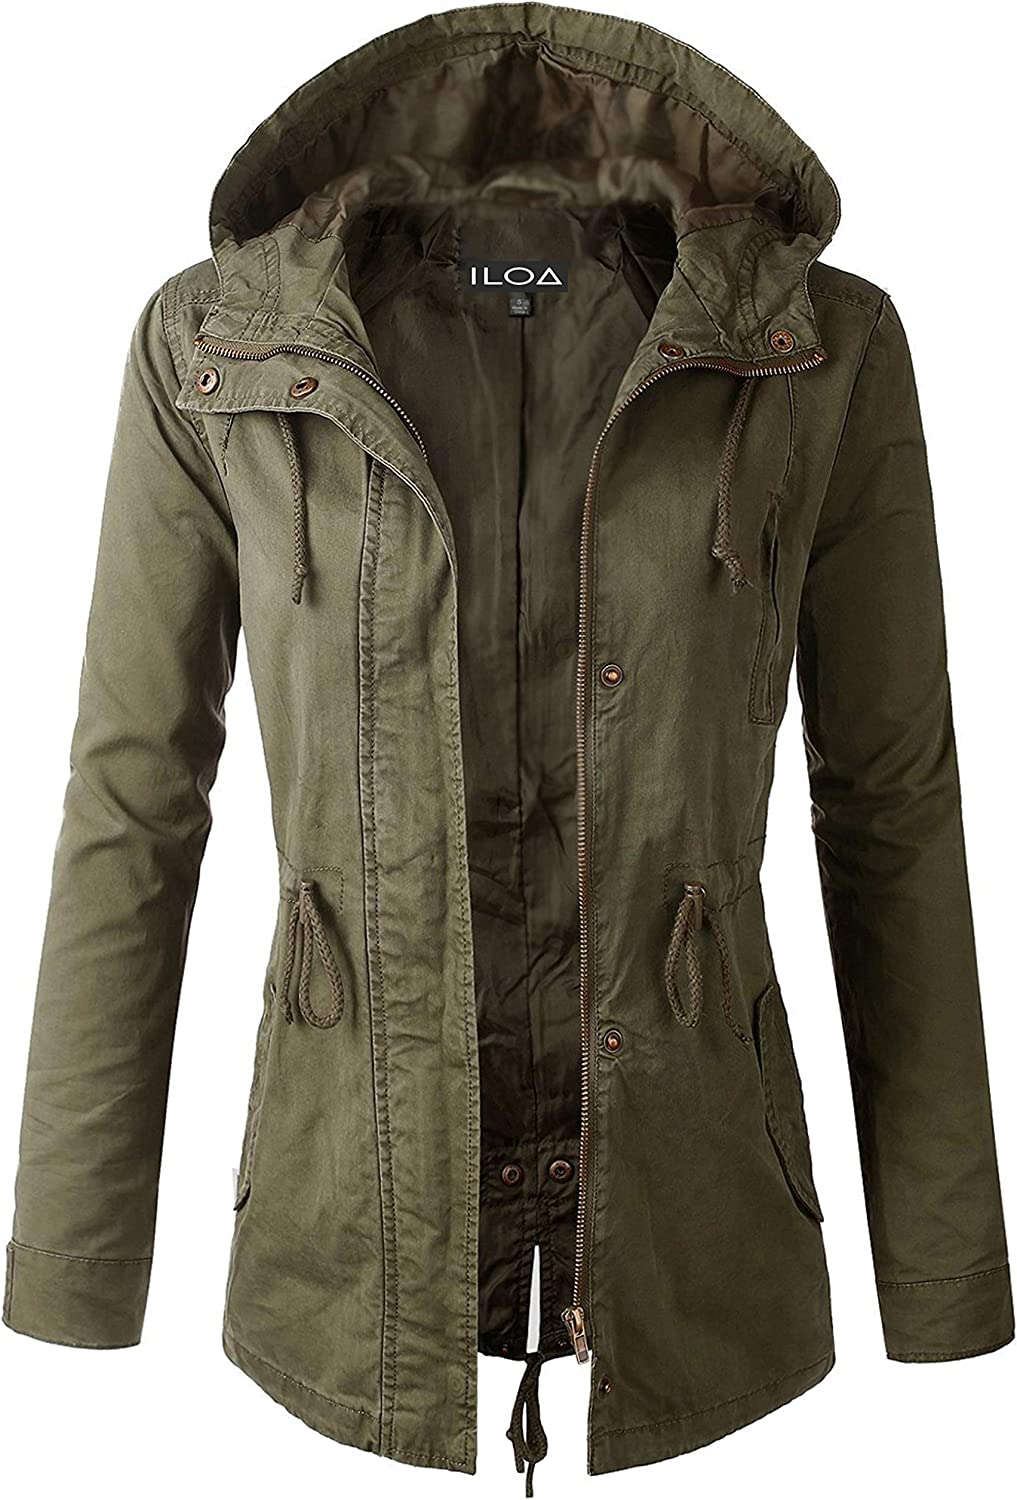 ILOA Casual Lightweight Classic Cotton Anorak Utility Army Jackets